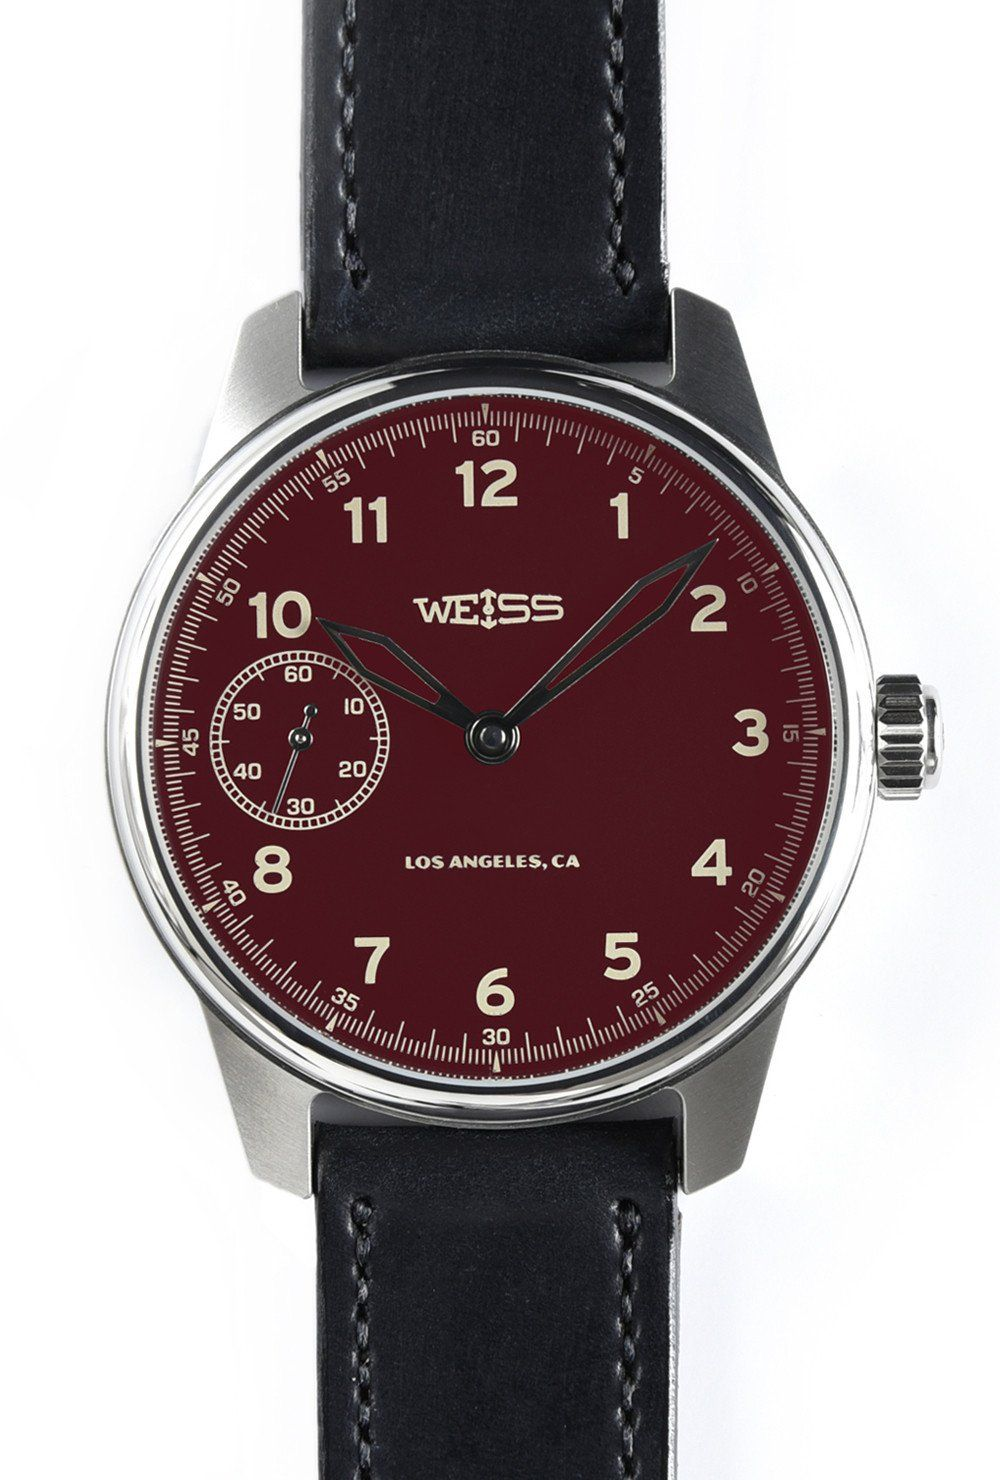 6a457847d Weiss Watch Company Deep Red Dial Special Issue Field Watch ...